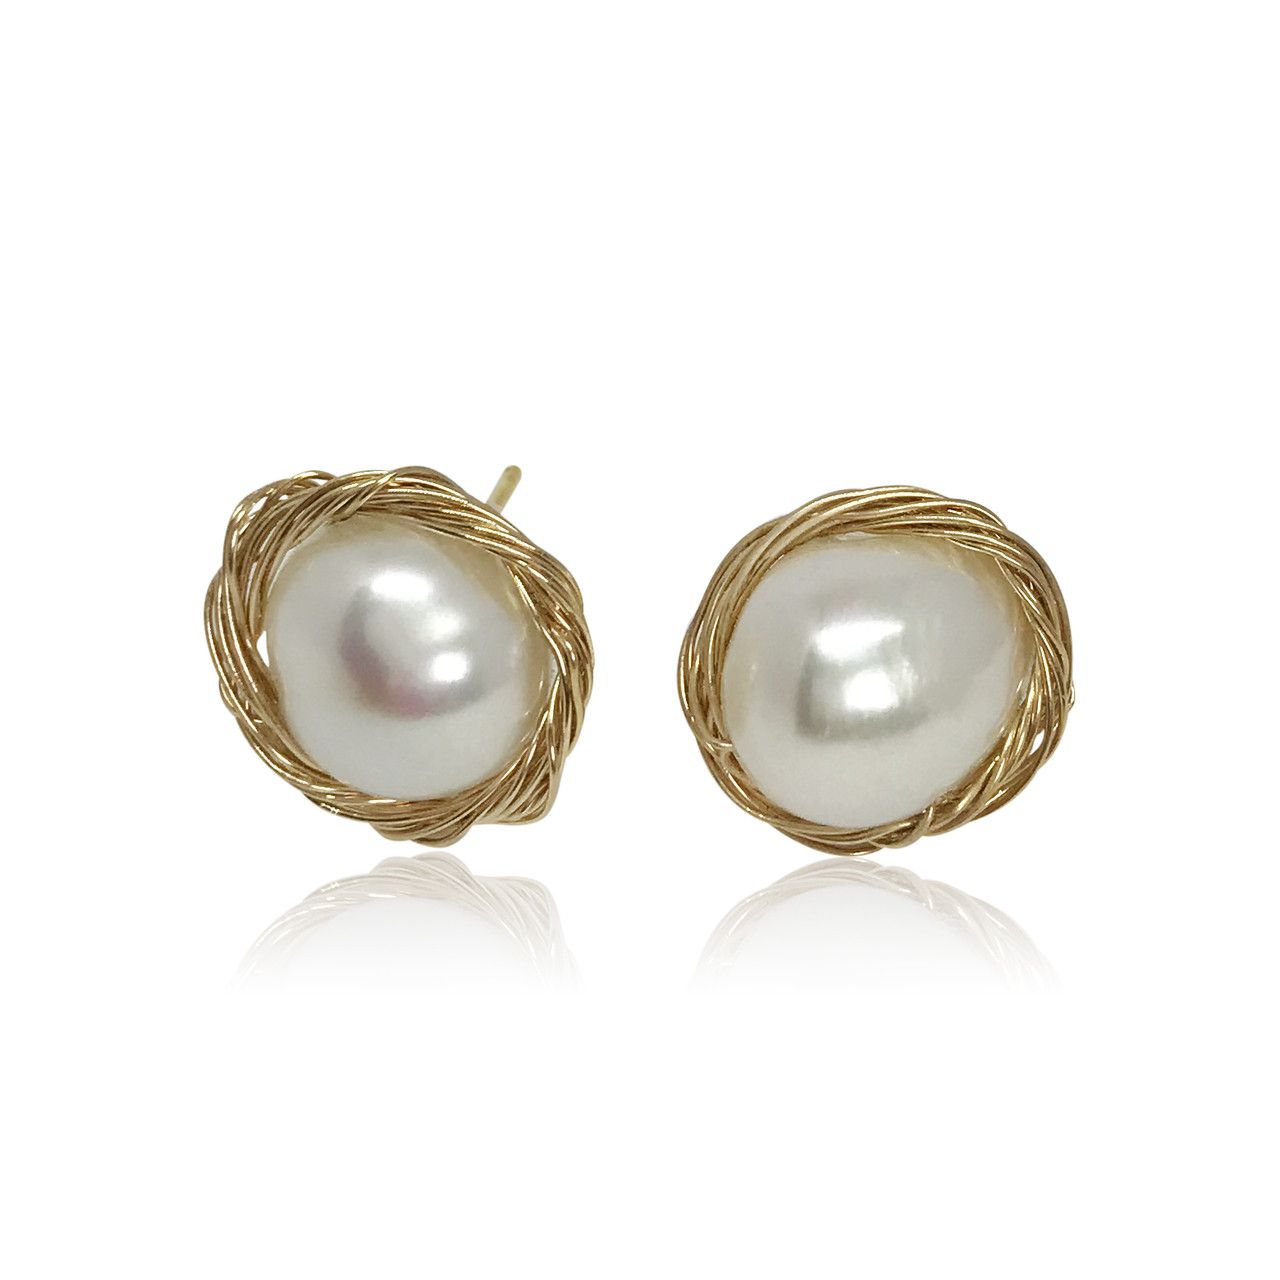 217a00bff13 White Baroque Pearl Stud Earrings in Gold Plated Sterling Silver ...